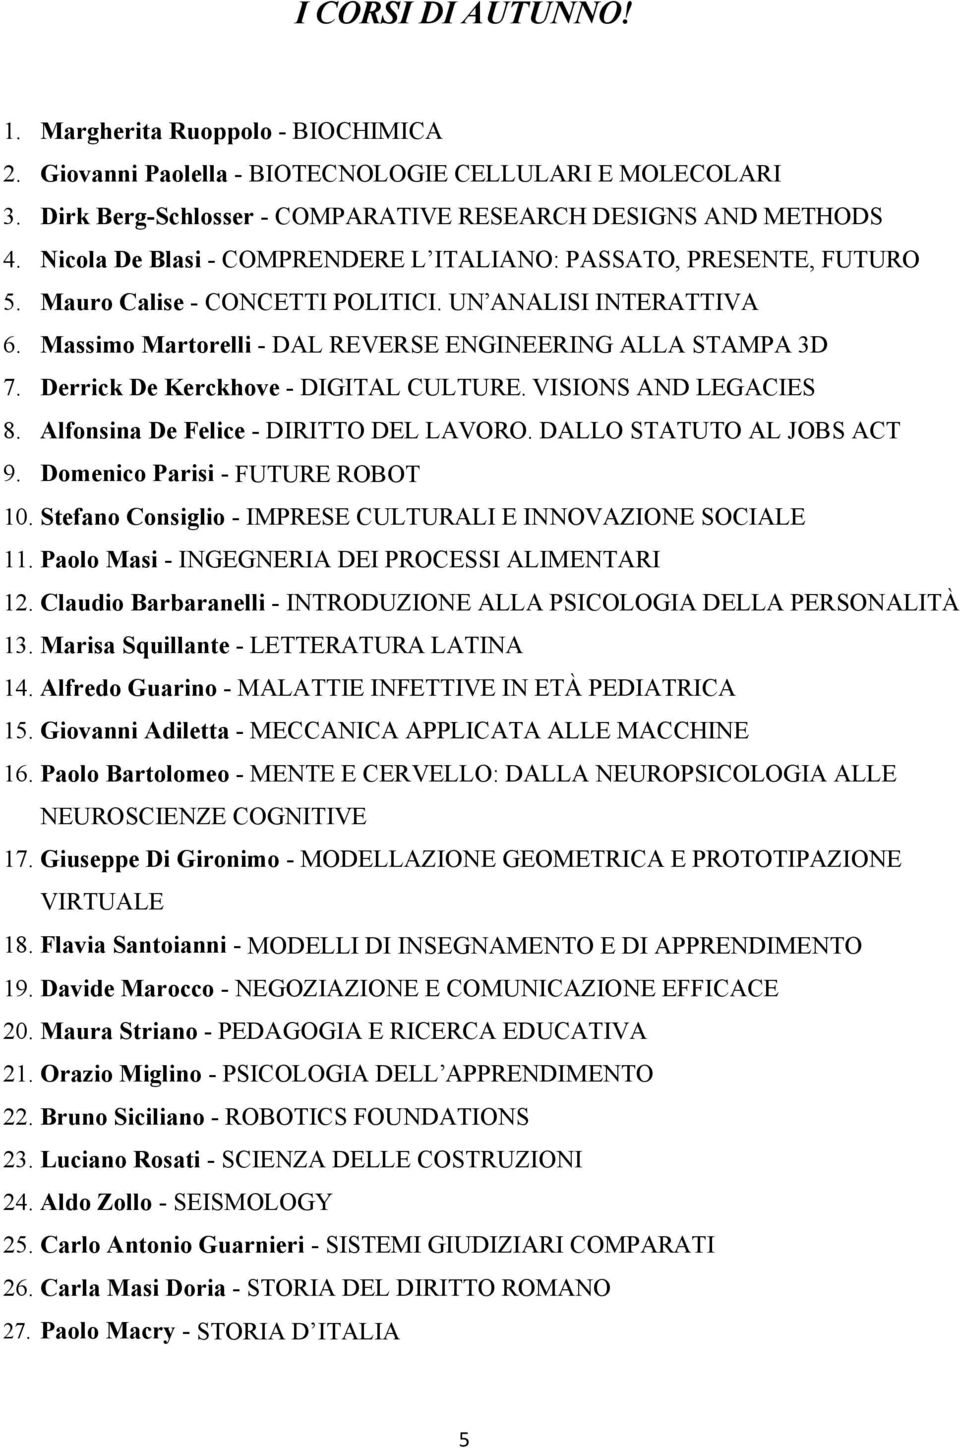 Derrick De Kerckhove - DIGITAL CULTURE. VISIONS AND LEGACIES 8. Alfonsina De Felice - DIRITTO DEL LAVORO. DALLO STATUTO AL JOBS ACT 9. Domenico Parisi - FUTURE ROBOT 10.